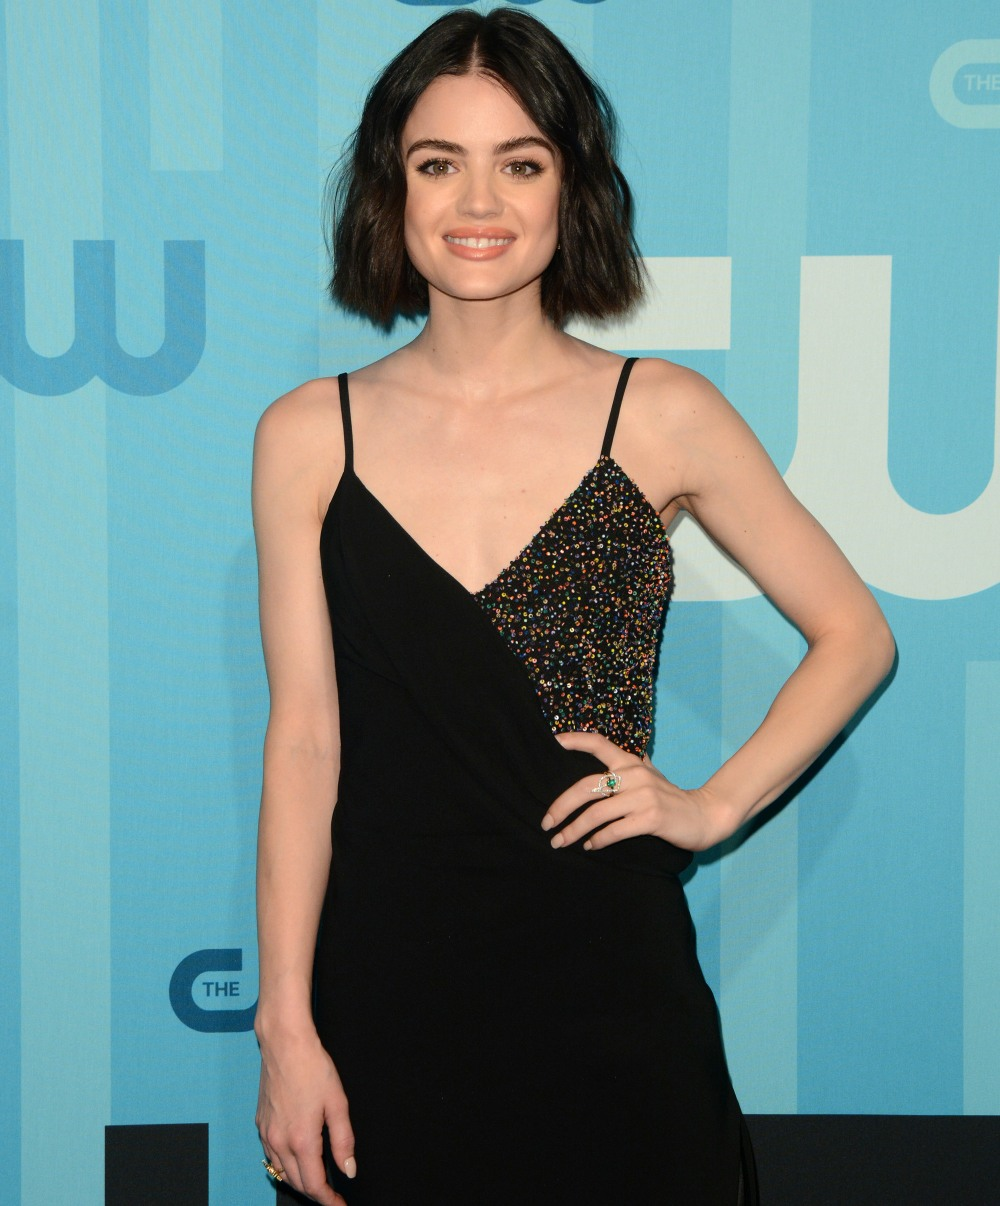 Lucy Hale called herself 'fat' on Instagram & everybody yelled at her